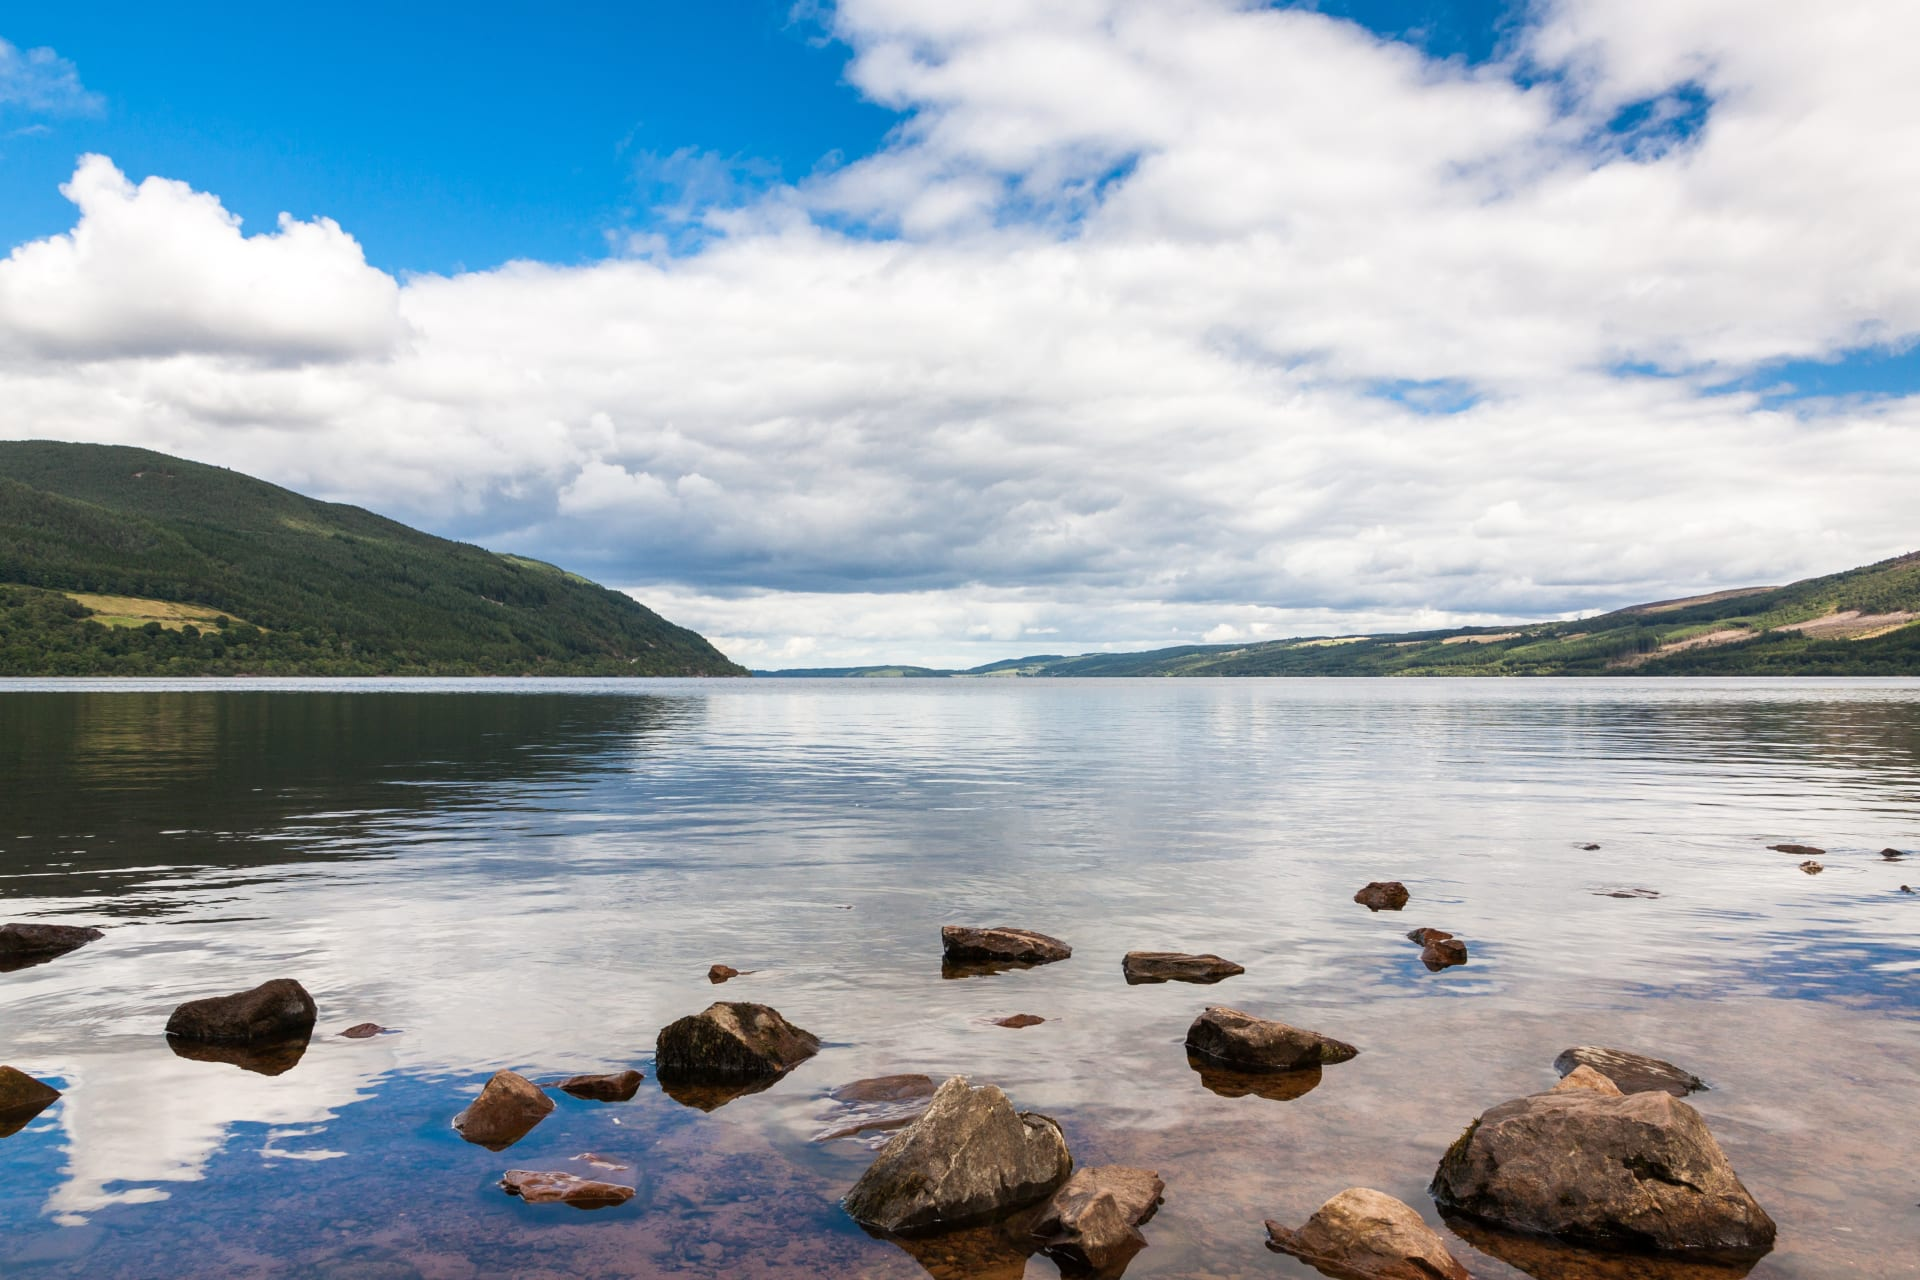 The Scottish Highlands - Loch Ness and Fort Augustus